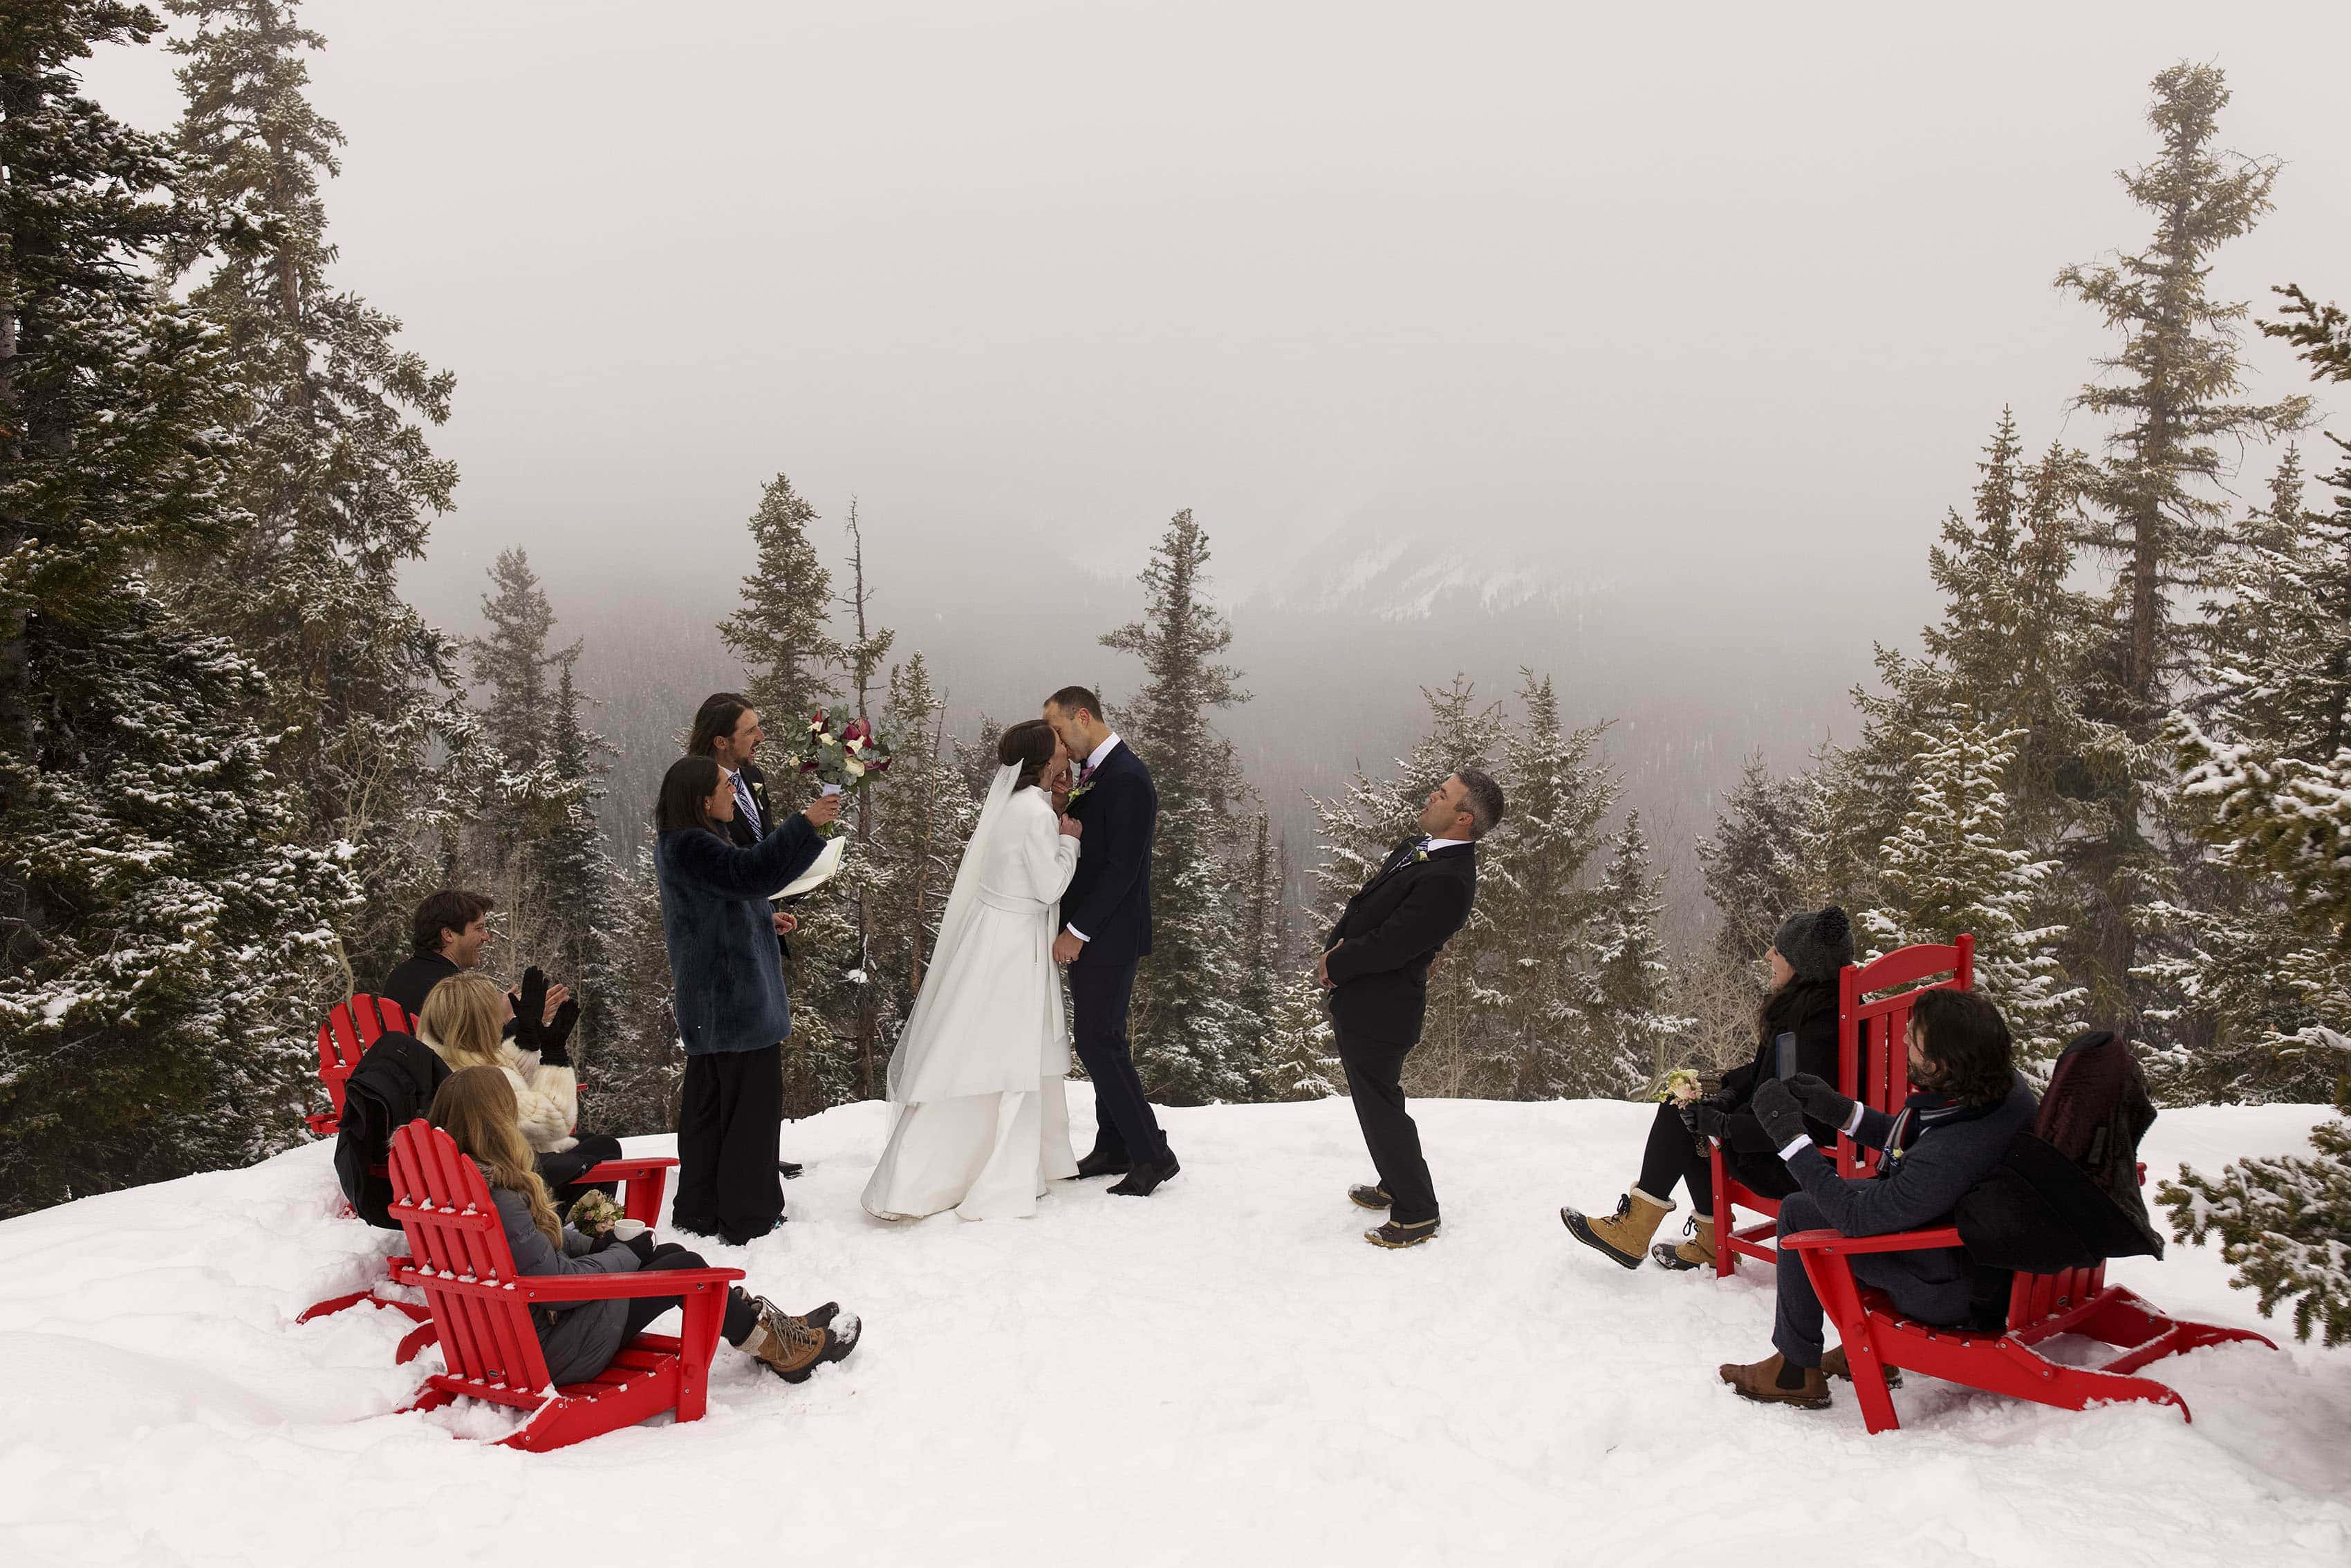 Olivia and Kyle's first kiss on the snowy Aspen wedding deck